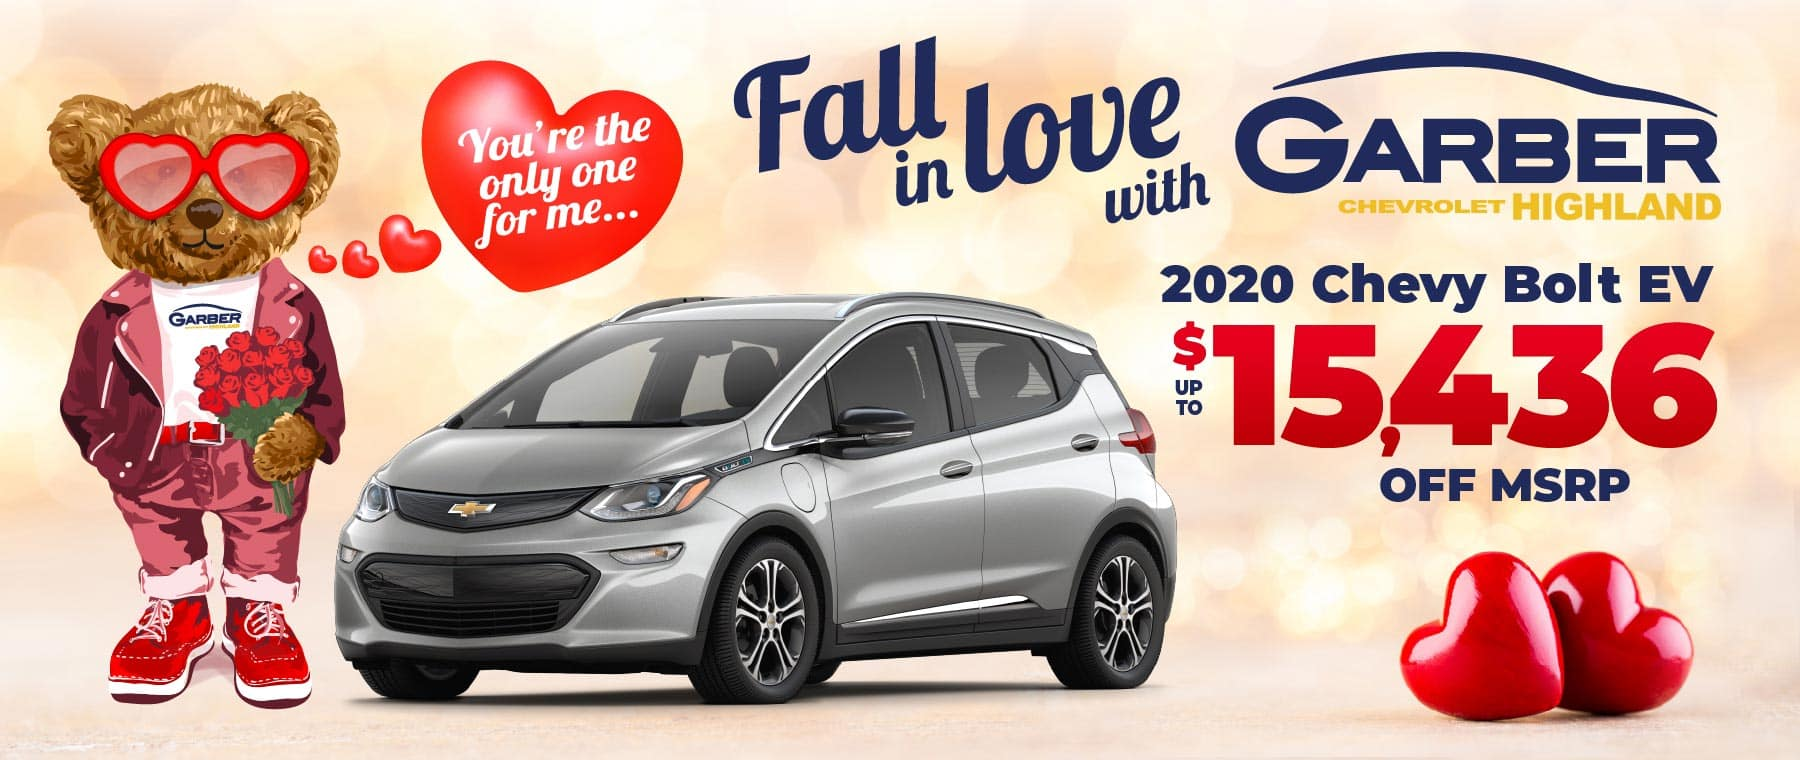 2020 Chevy Bolt - up to $15,436 off MSRP